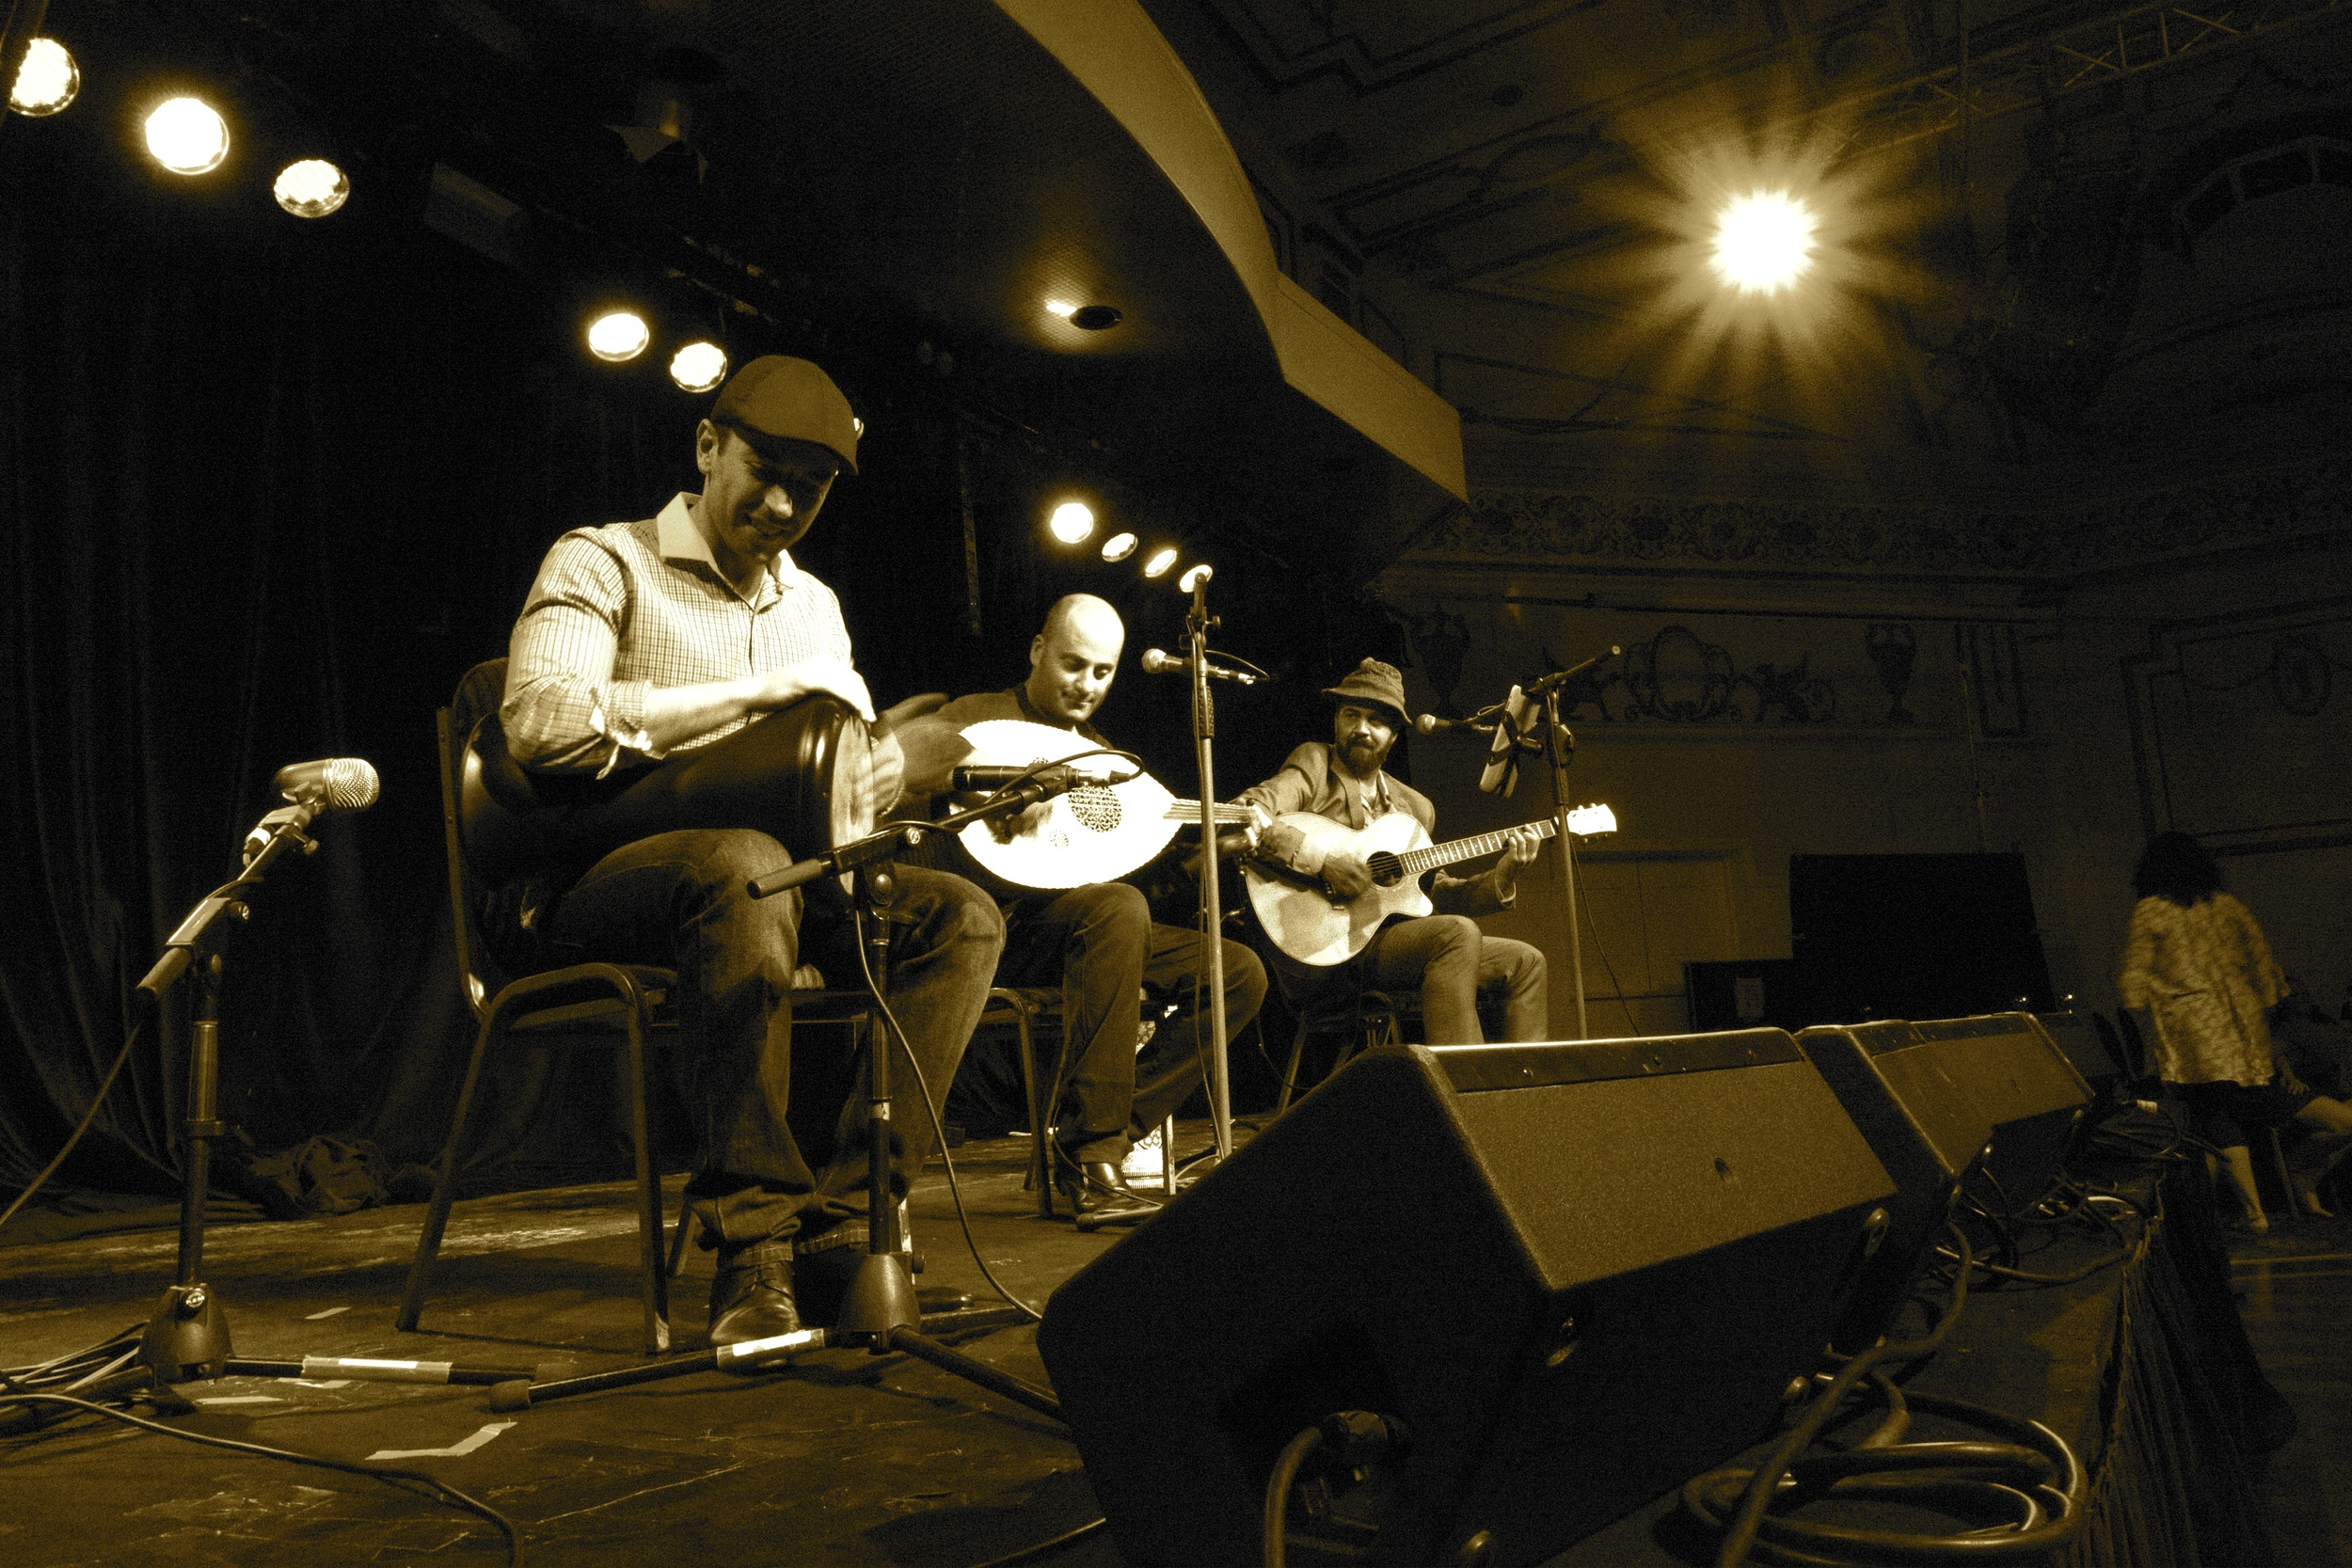 Zourouna playing live Middle Eastern music @ Thornbury Theatre, 2014